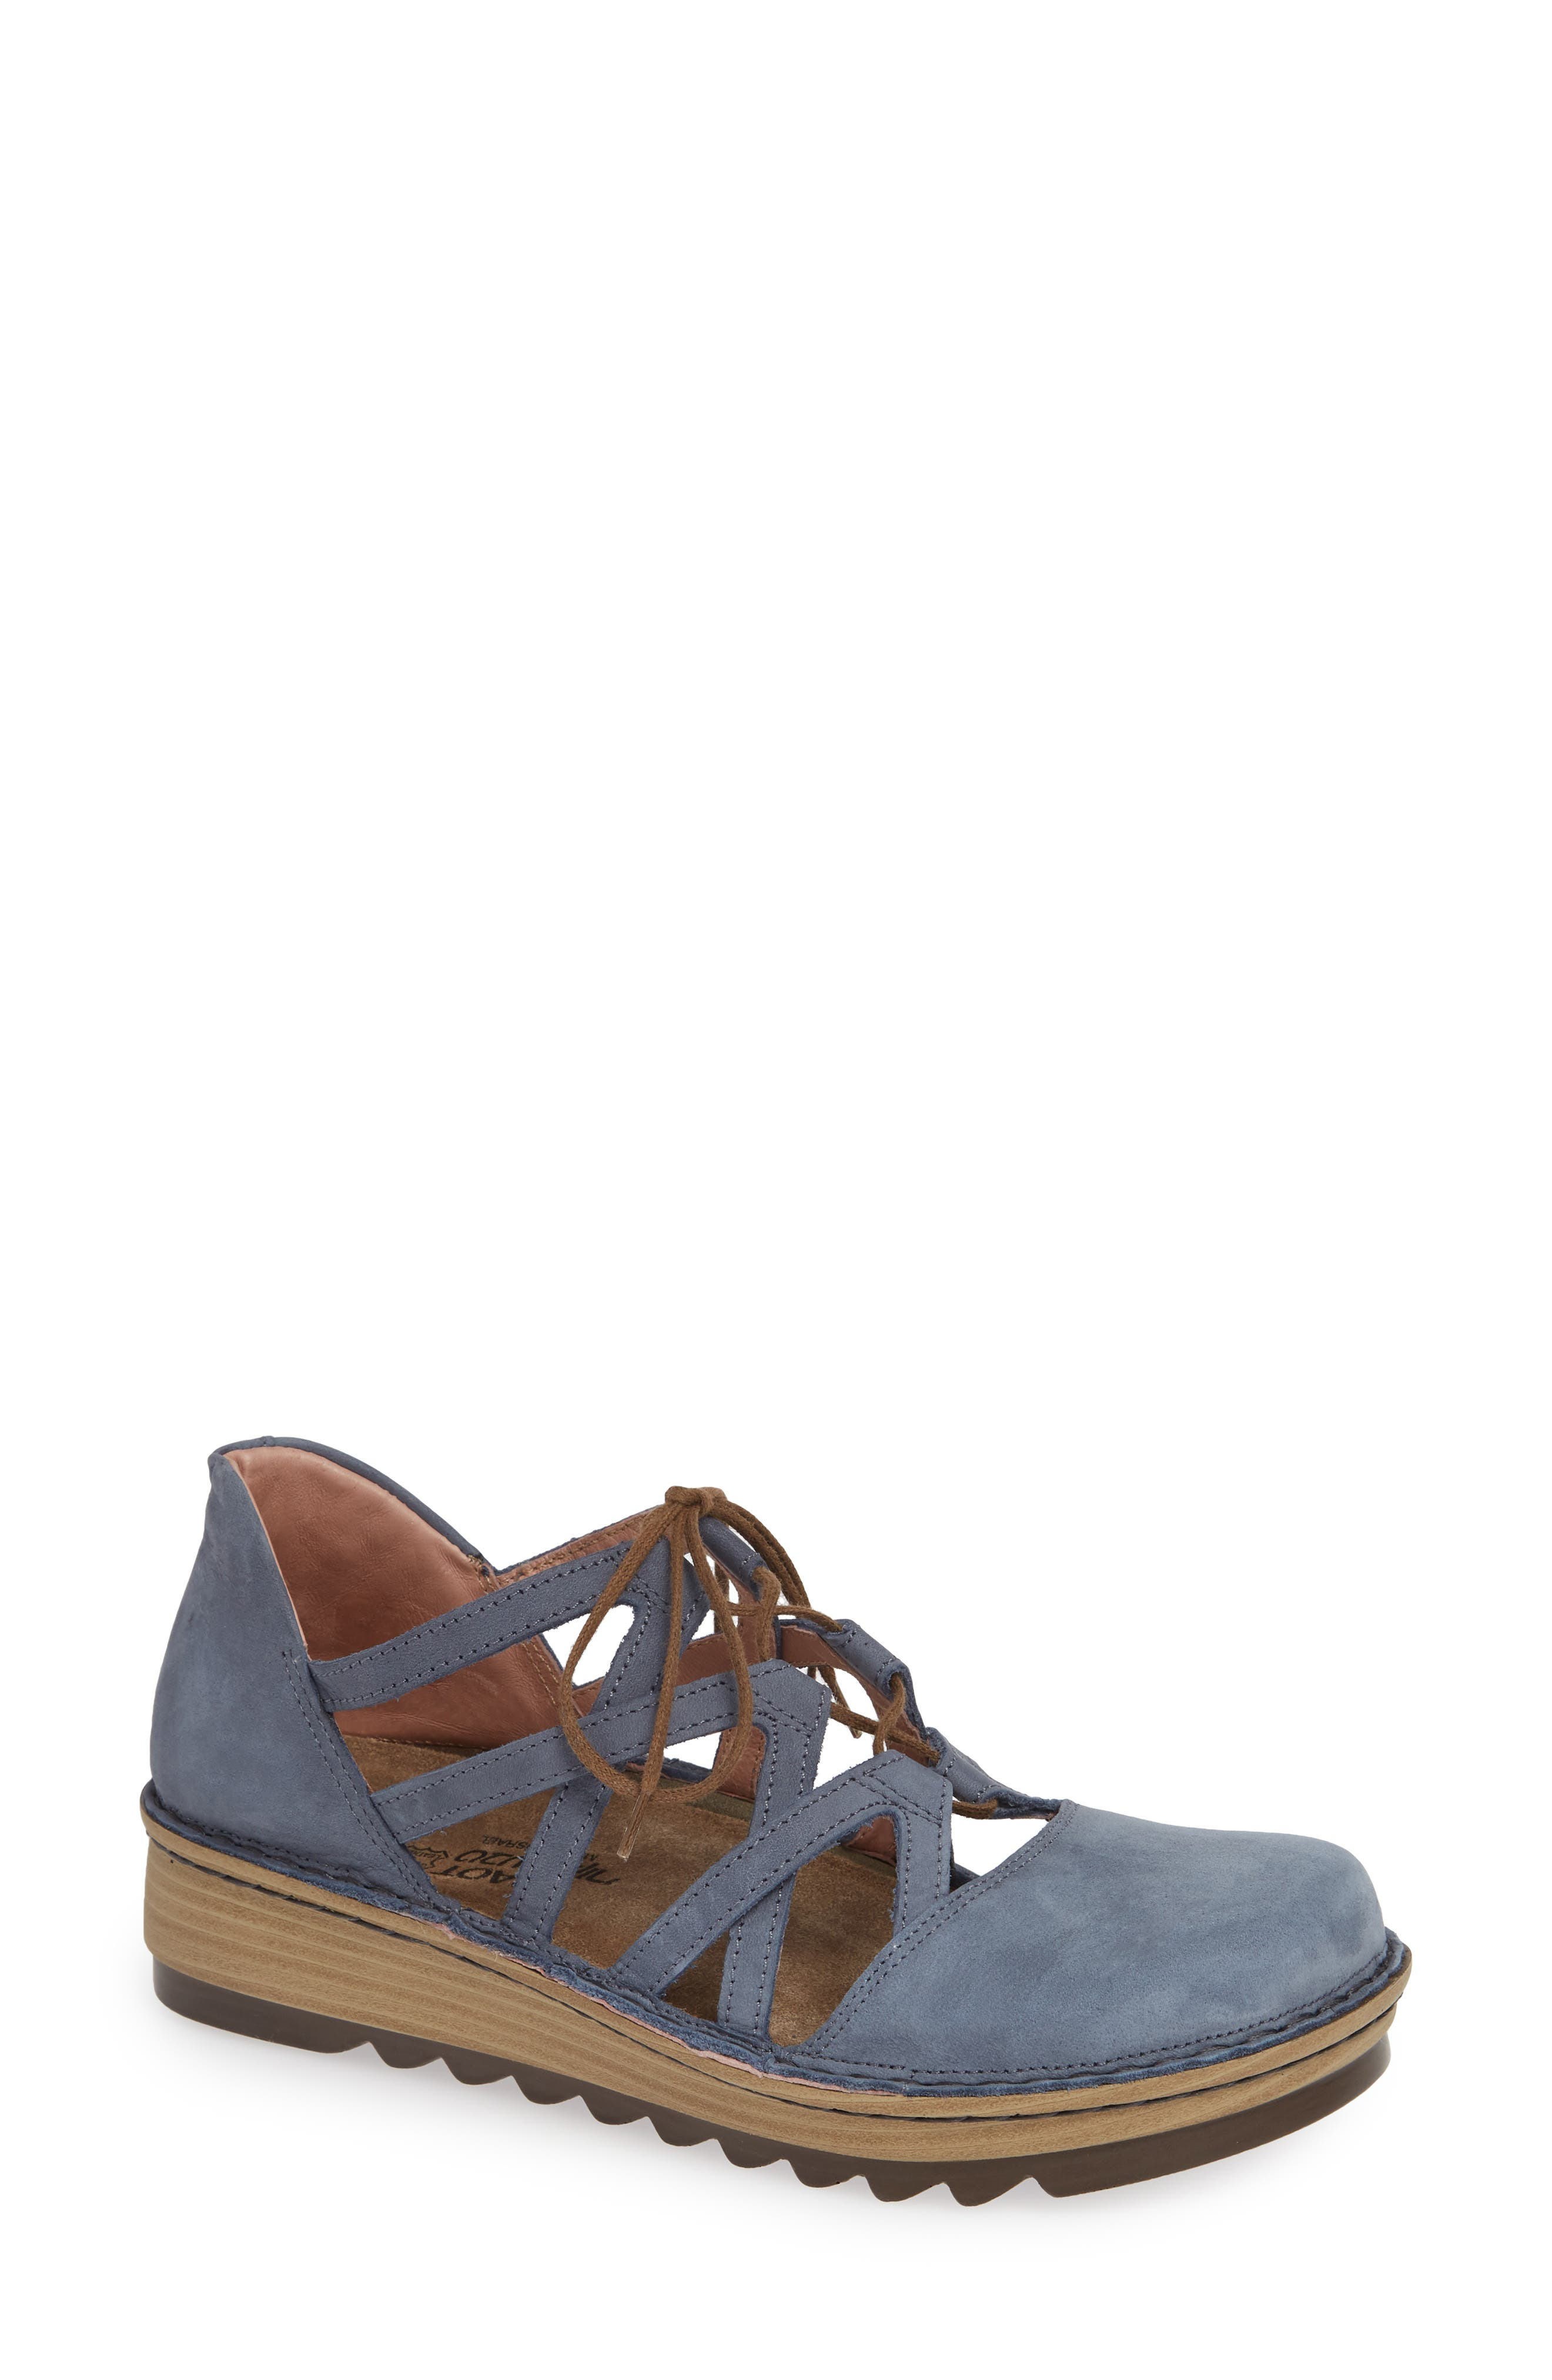 Naot Calathea Ghillie Laced Wedge, Blue